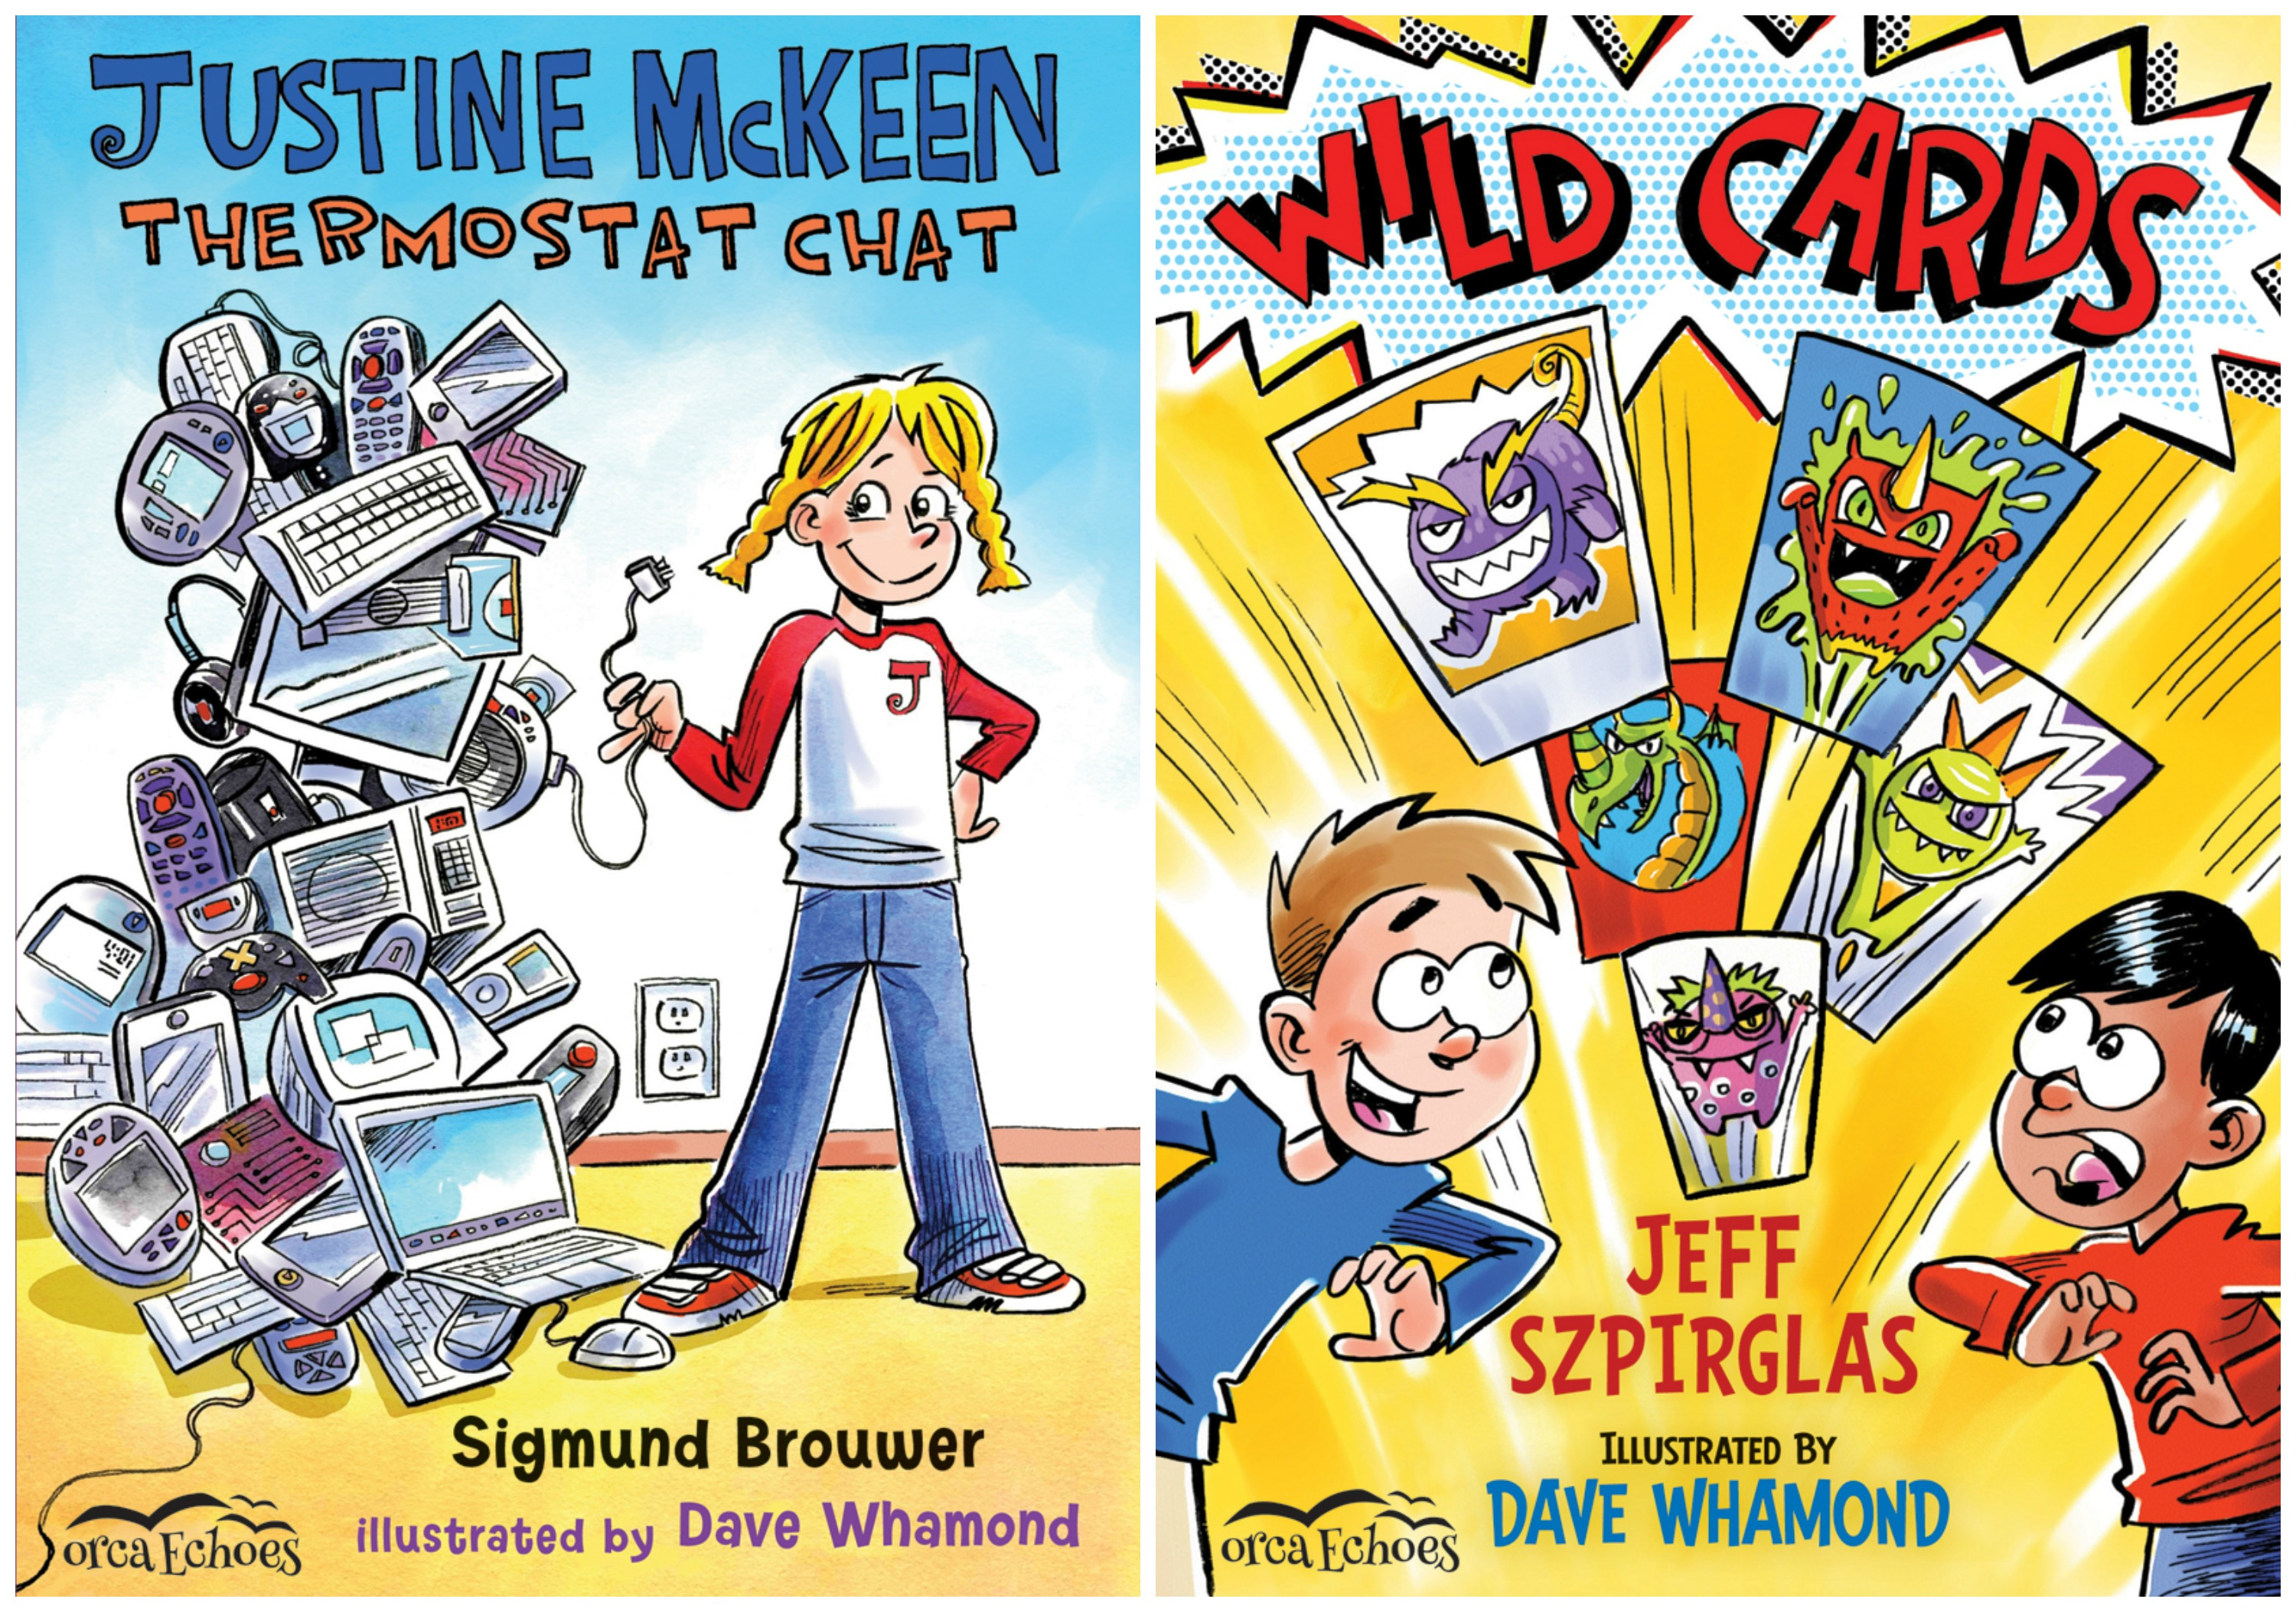 Illustrator Feature: Dave Whamond